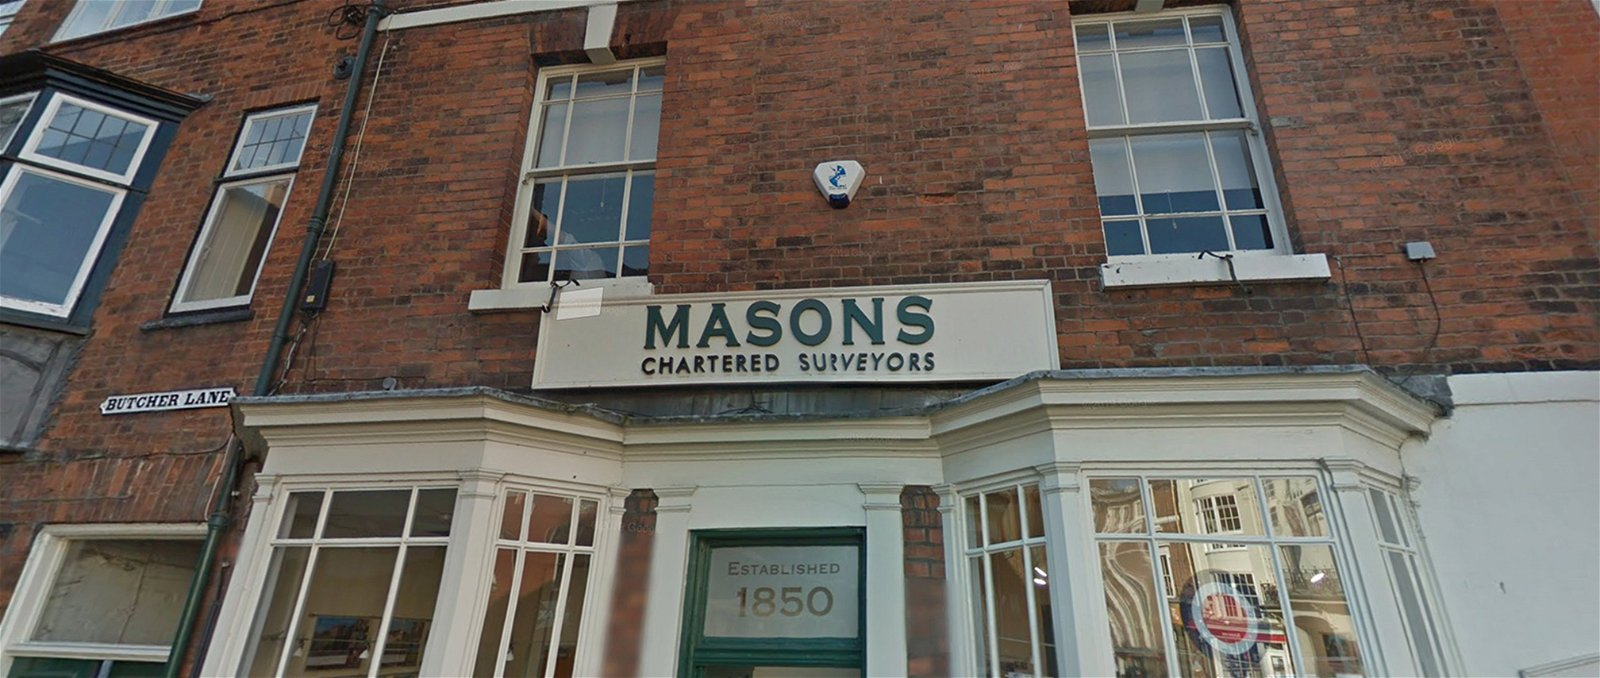 Masons have purchase property management software from Trace Solutions